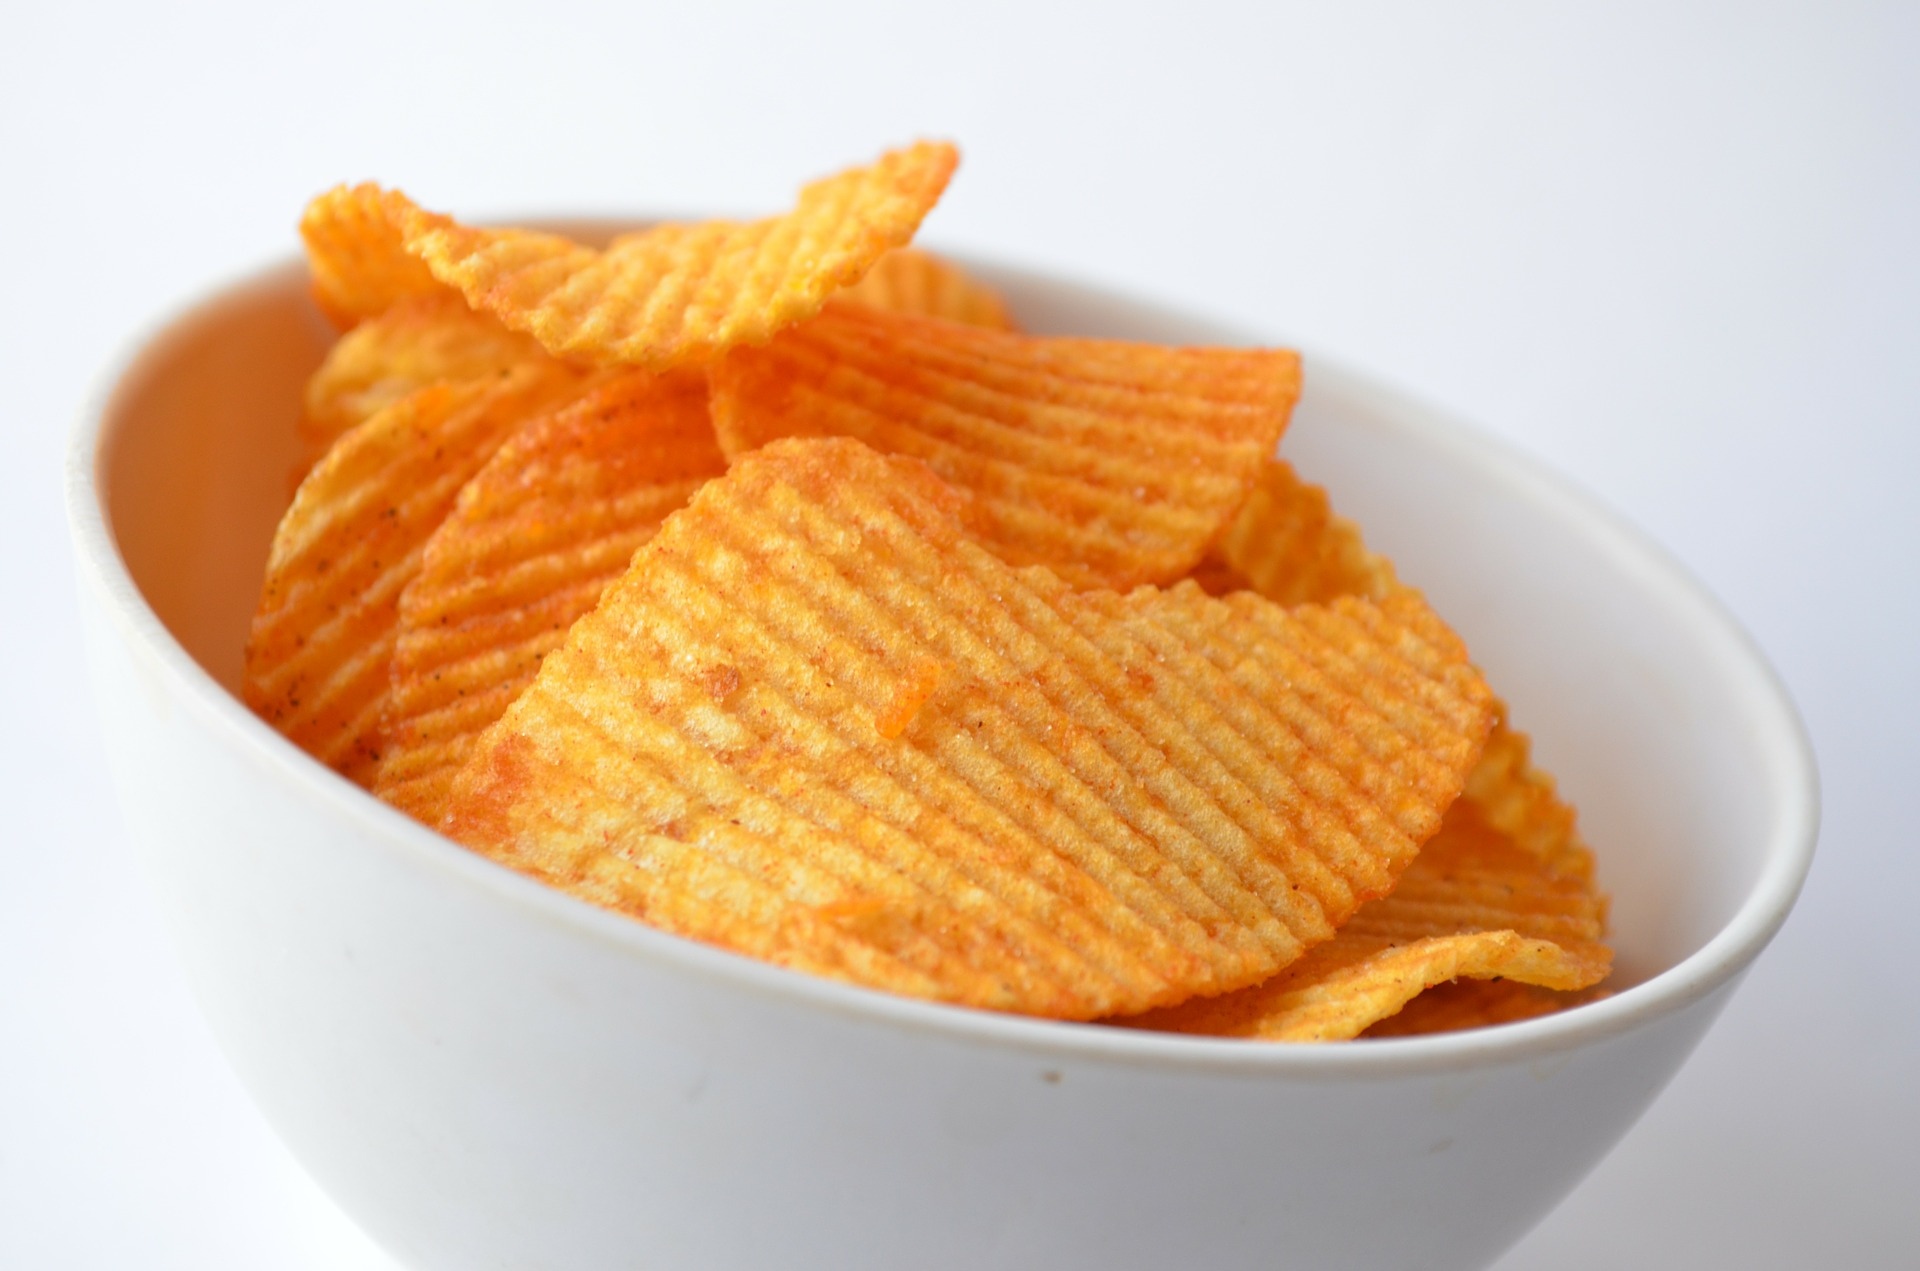 Image of bowl of potato chips.